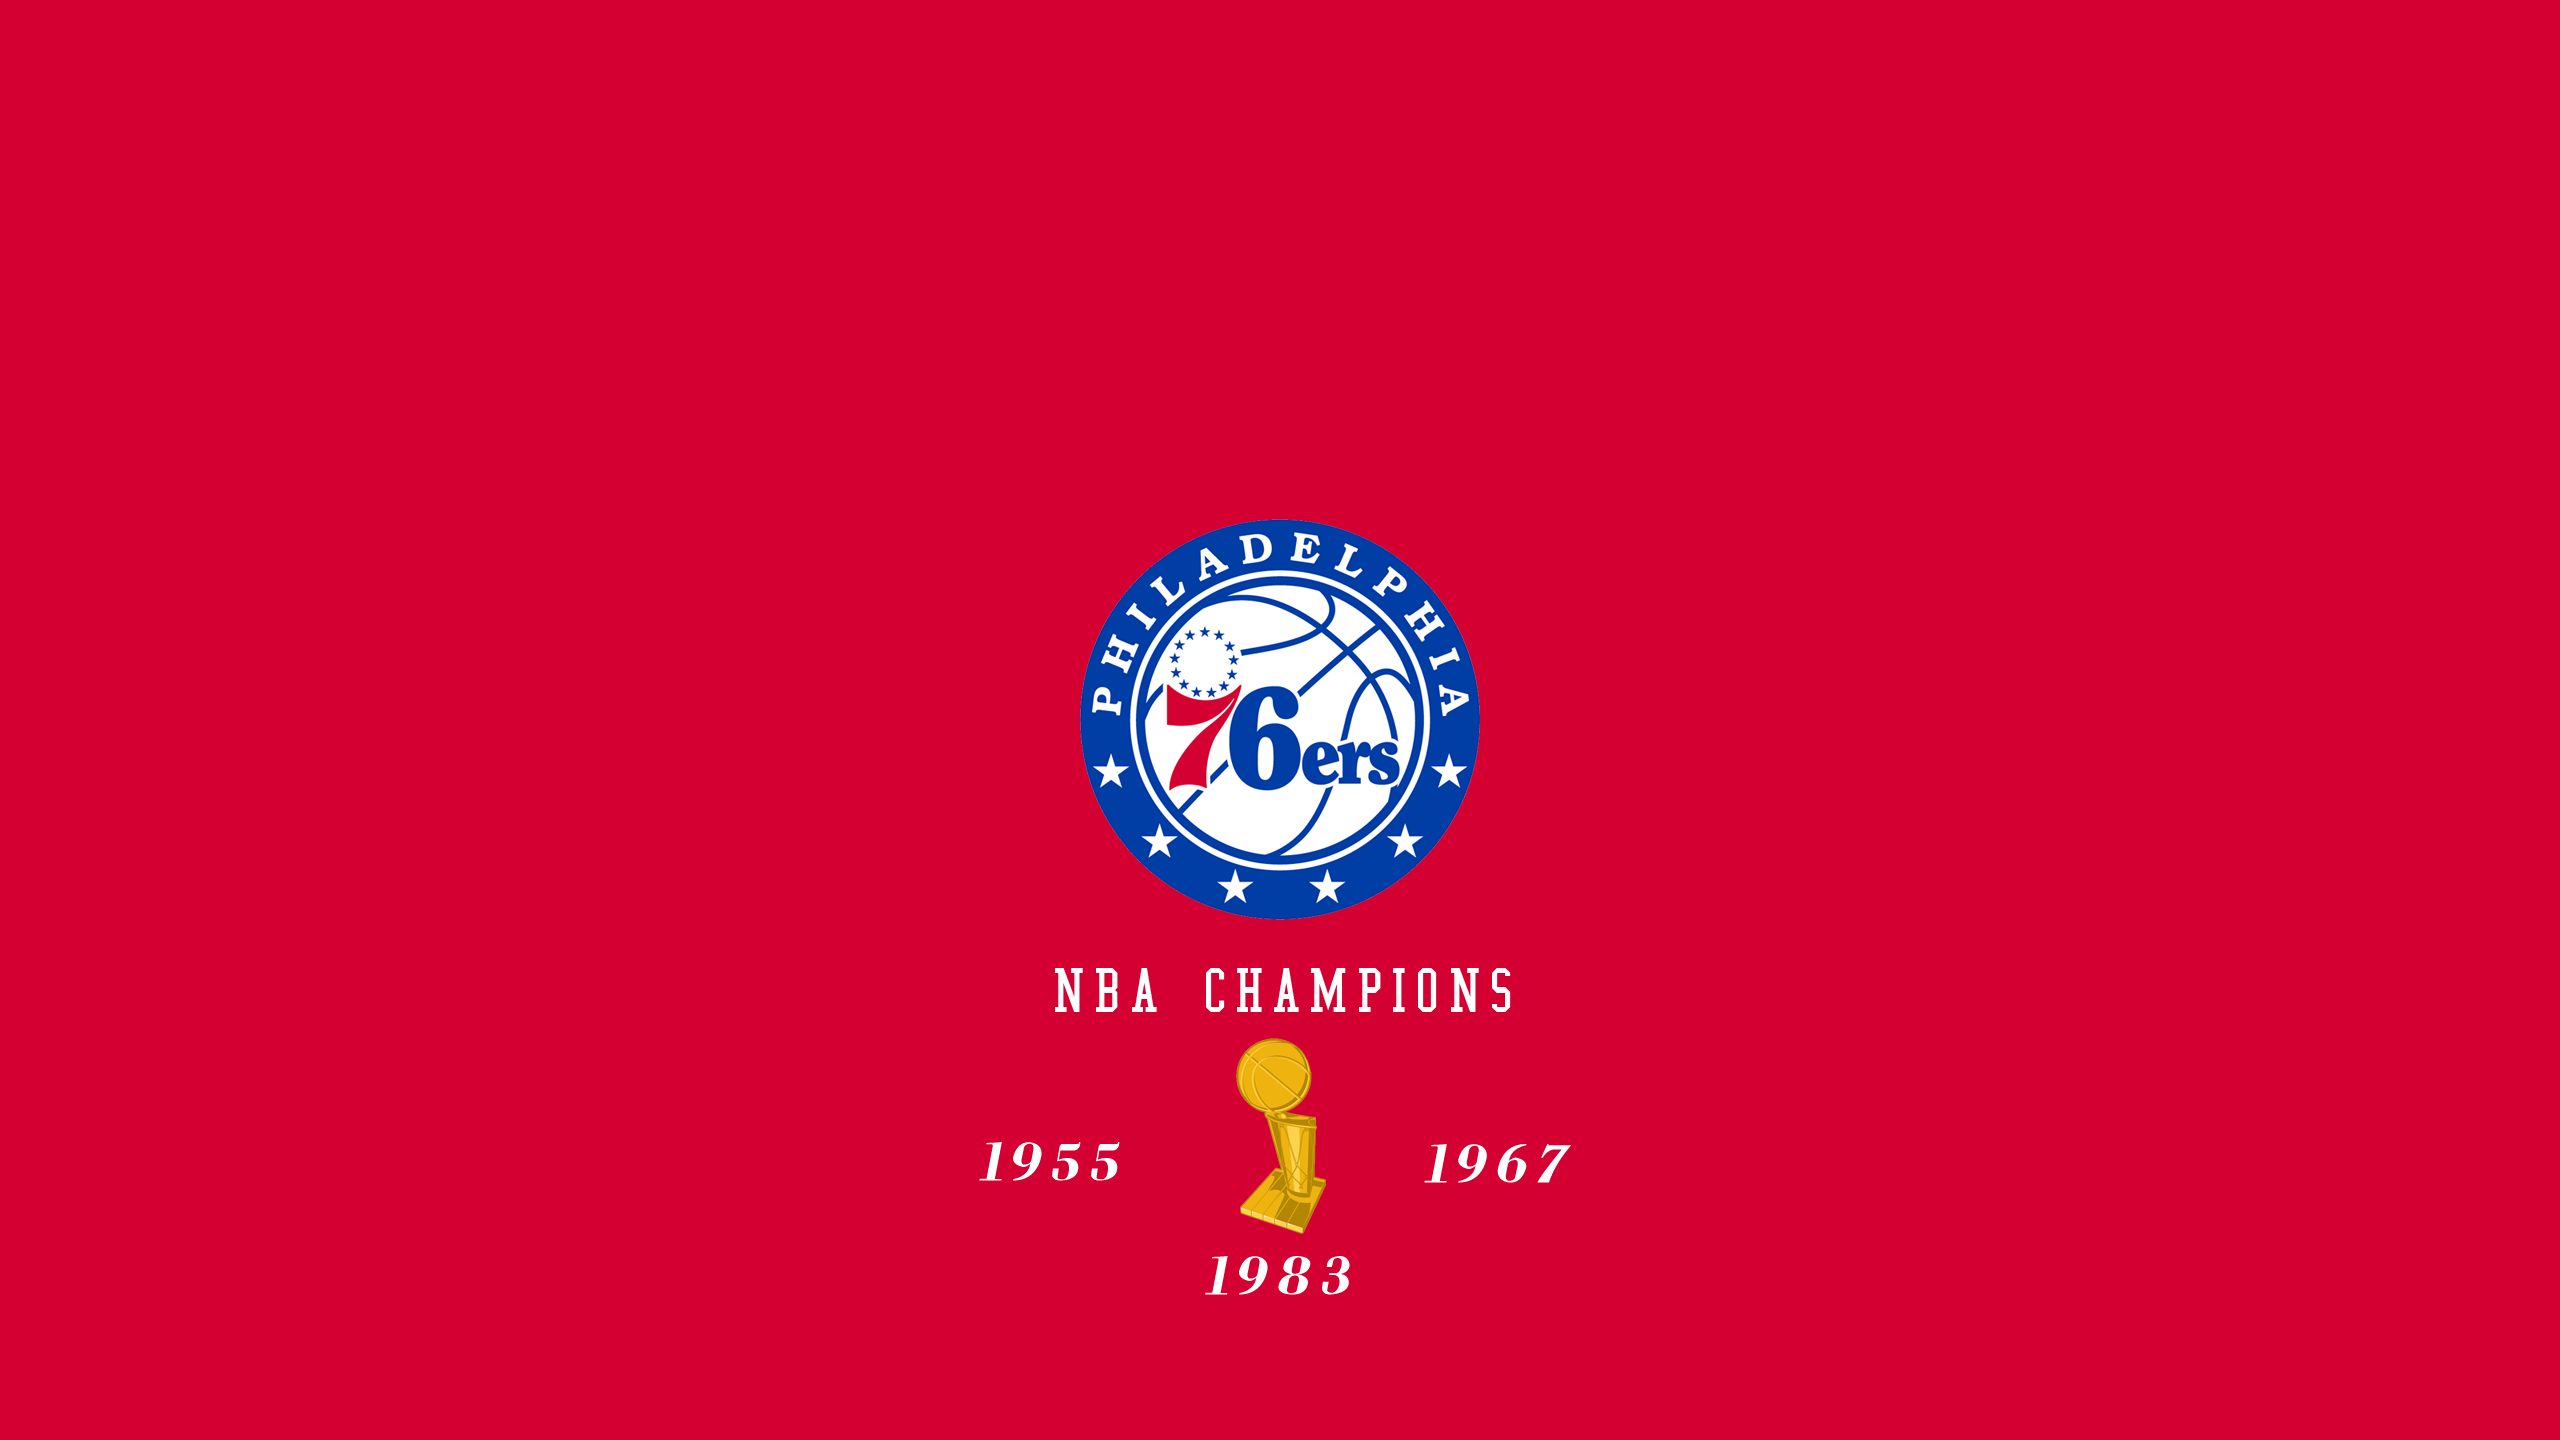 Philadelphia 76ers - NBA Champs